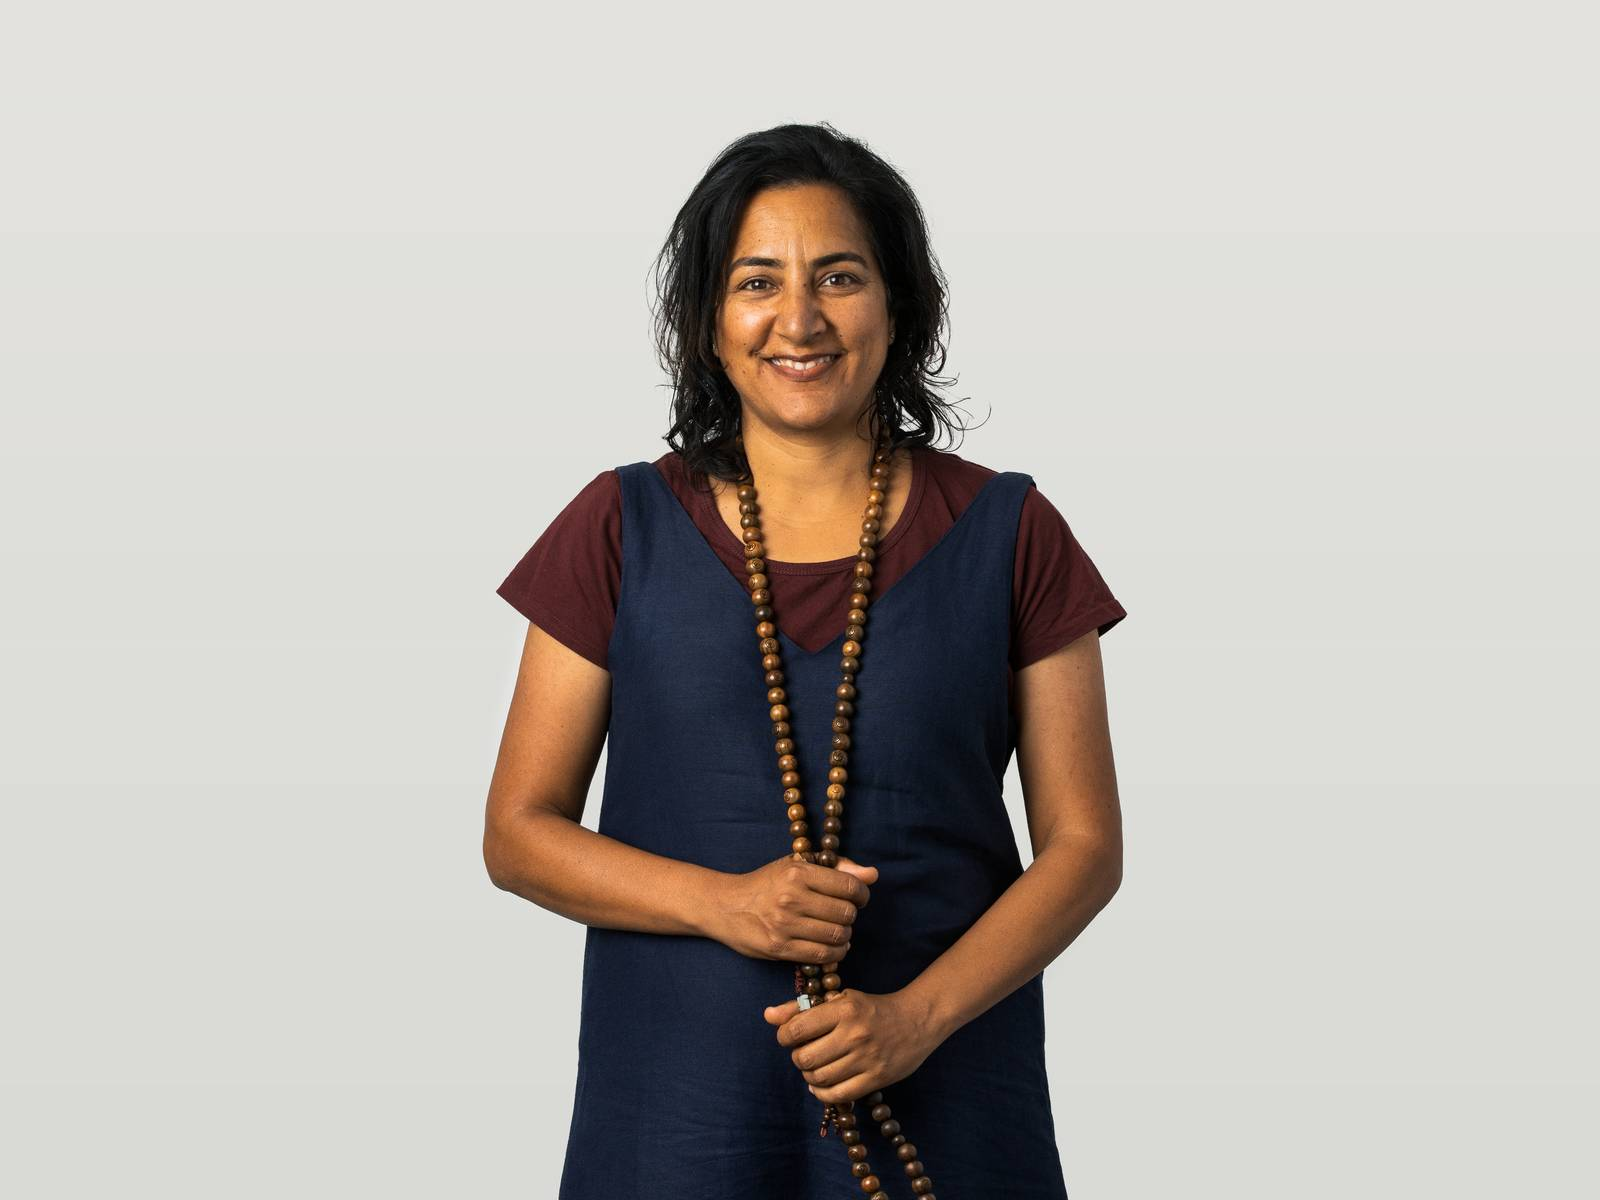 A profile image of Meena Kadri